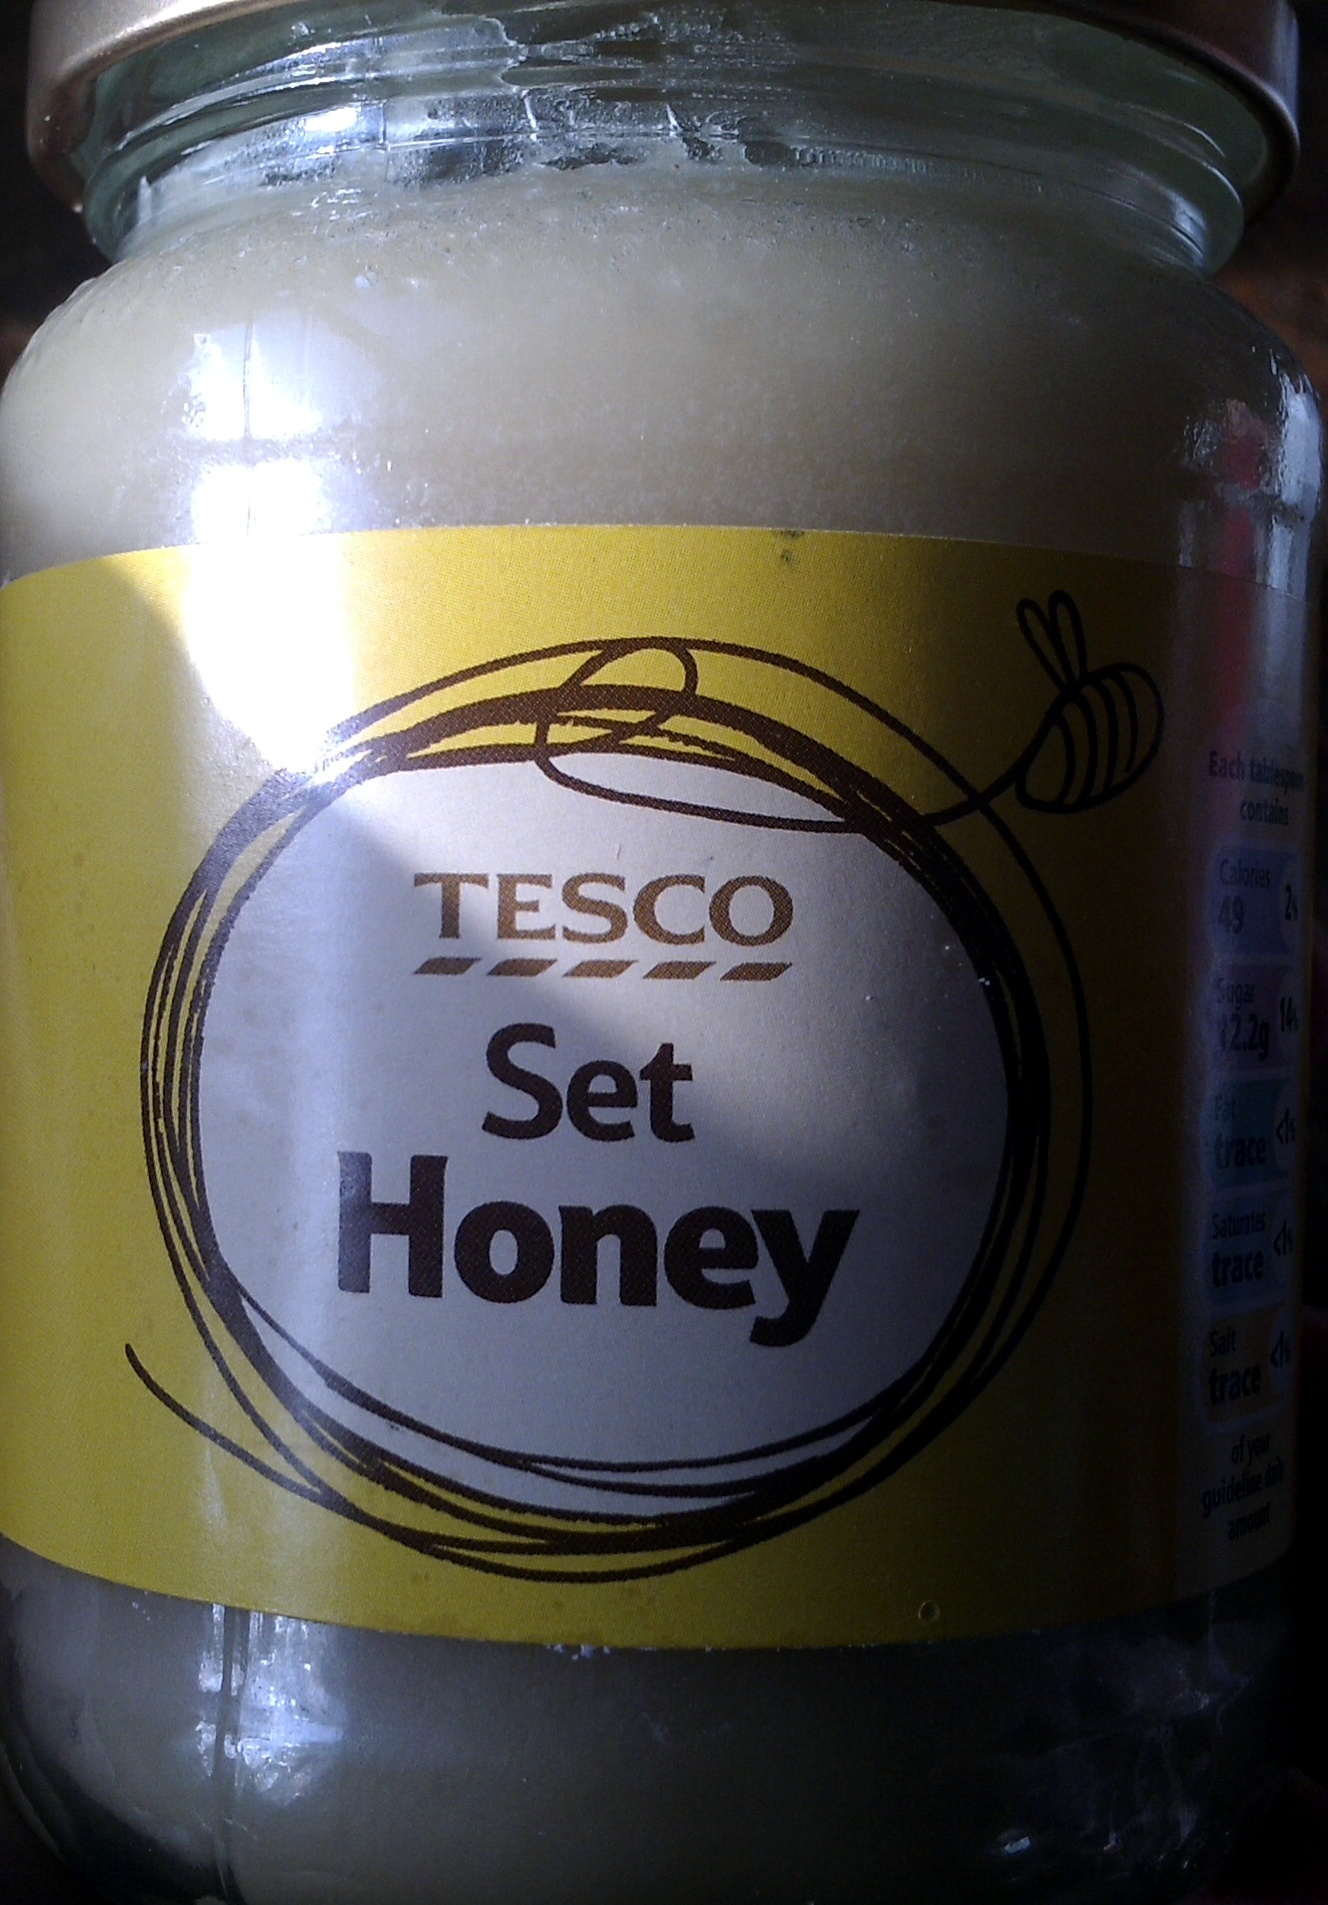 Tesco Set Honey - Product